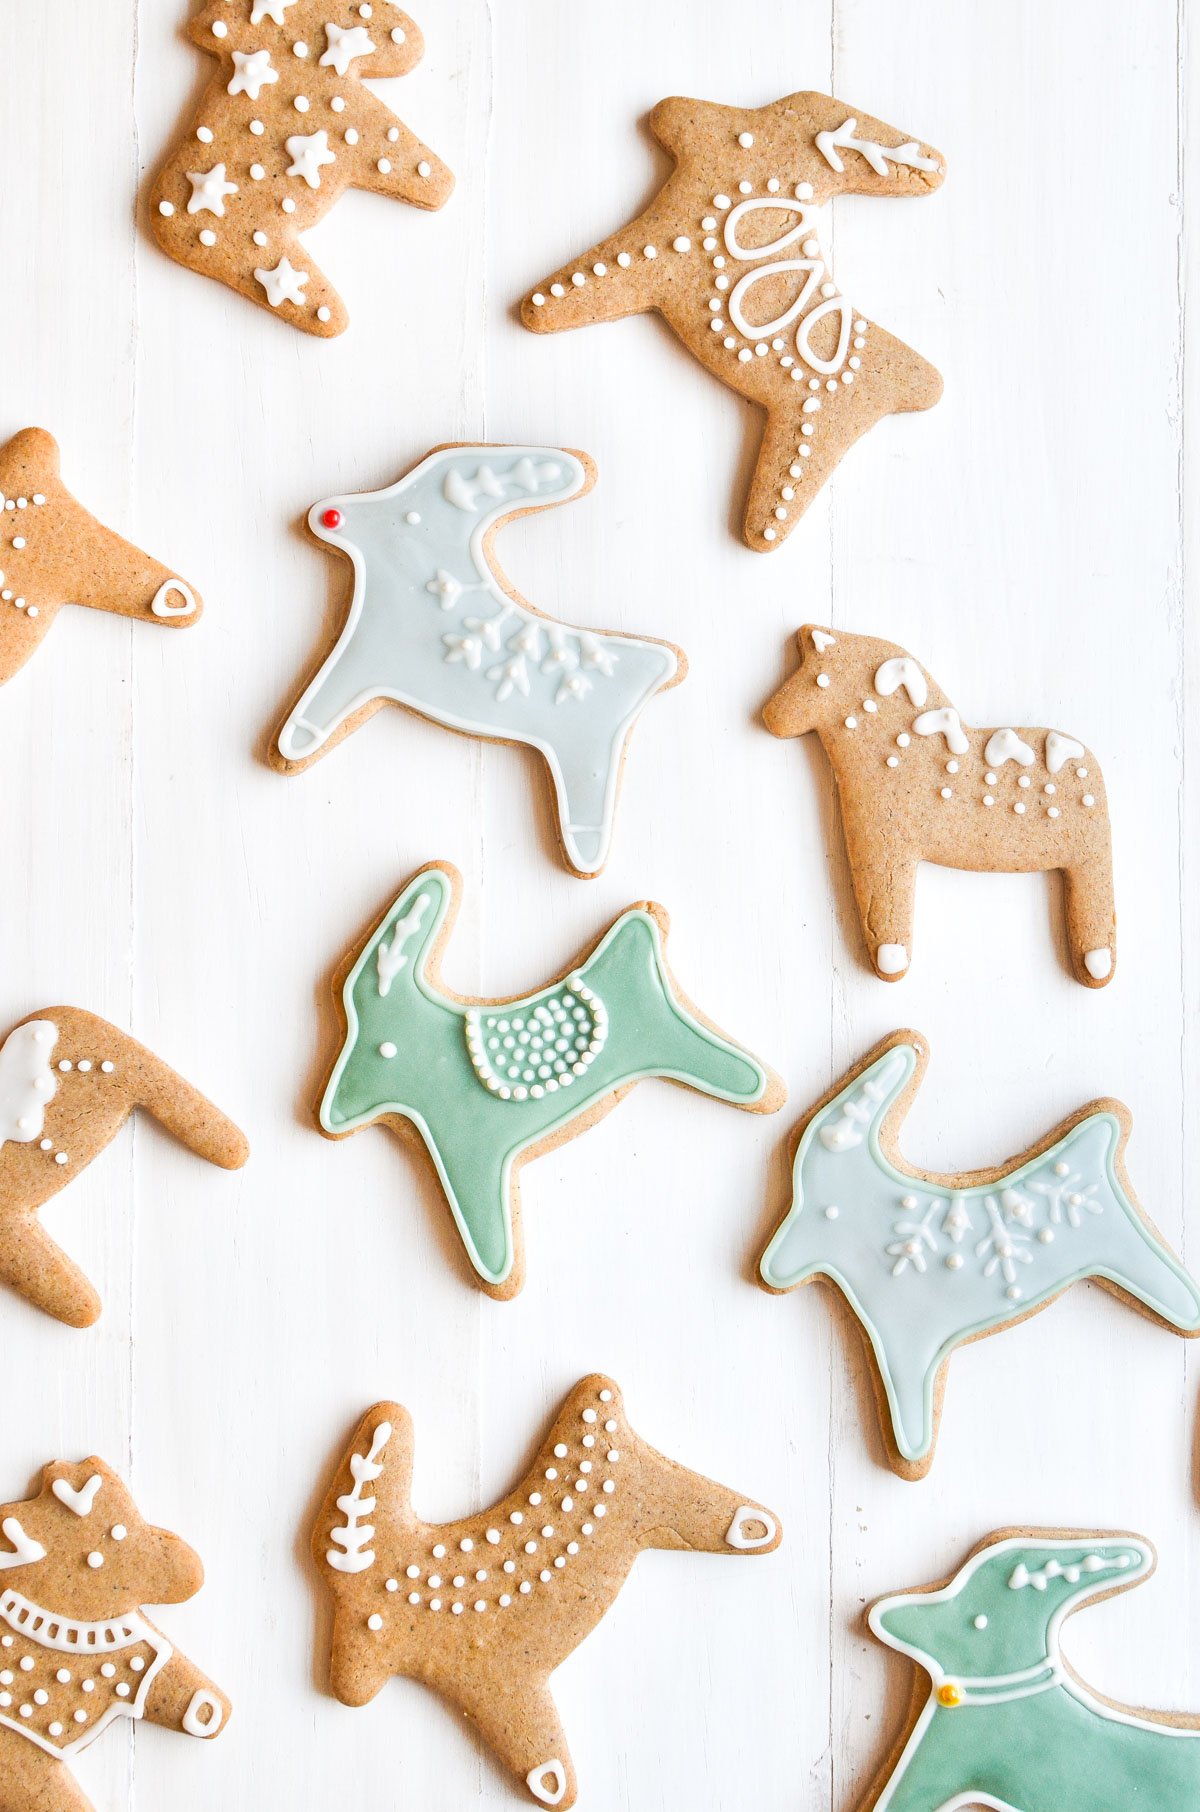 Pepparkakor Cookies on a white wooden background.